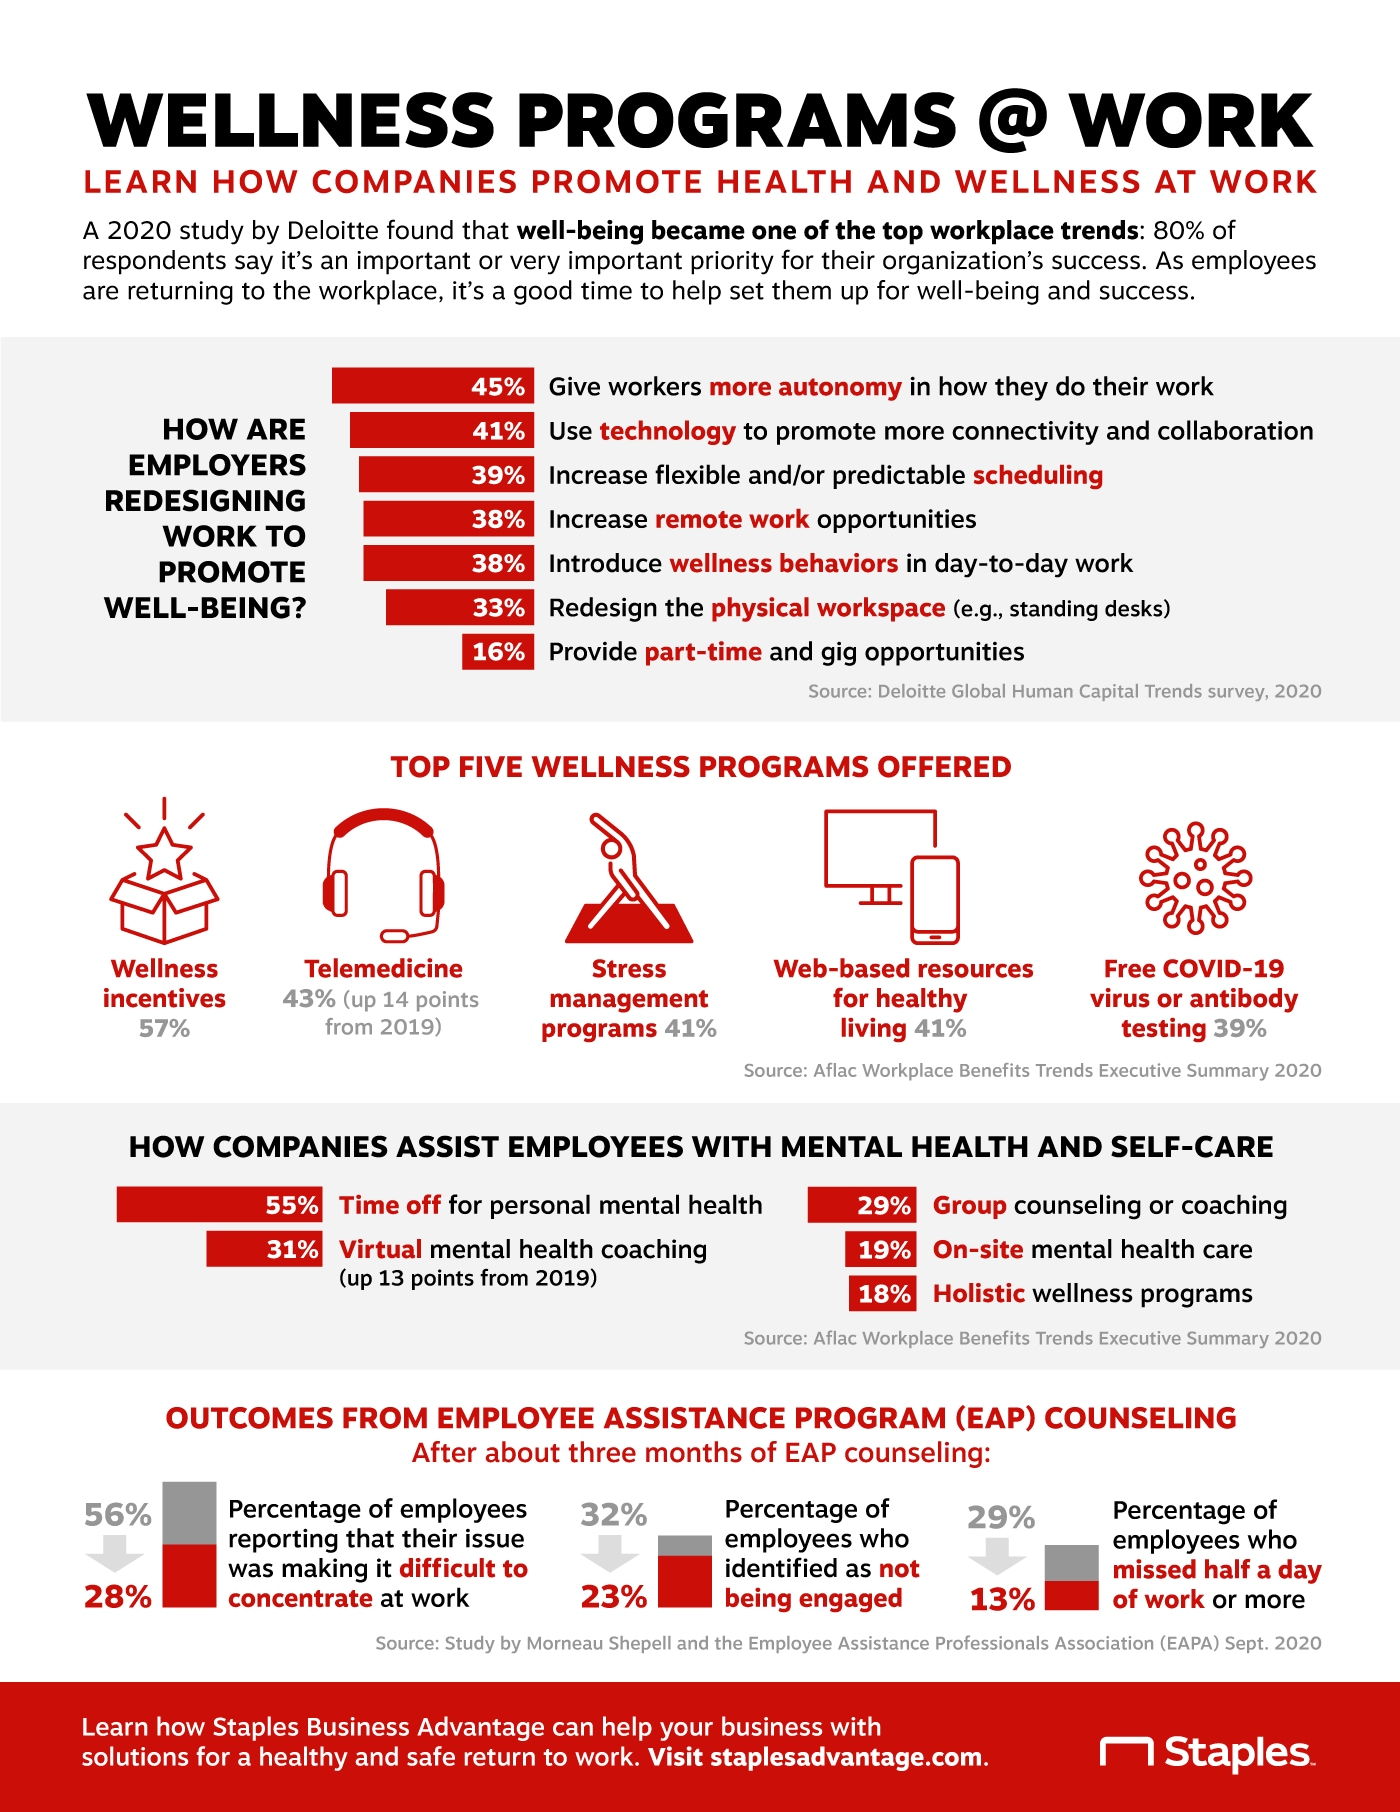 Infographic detailing how companies promote health and wellness at work.